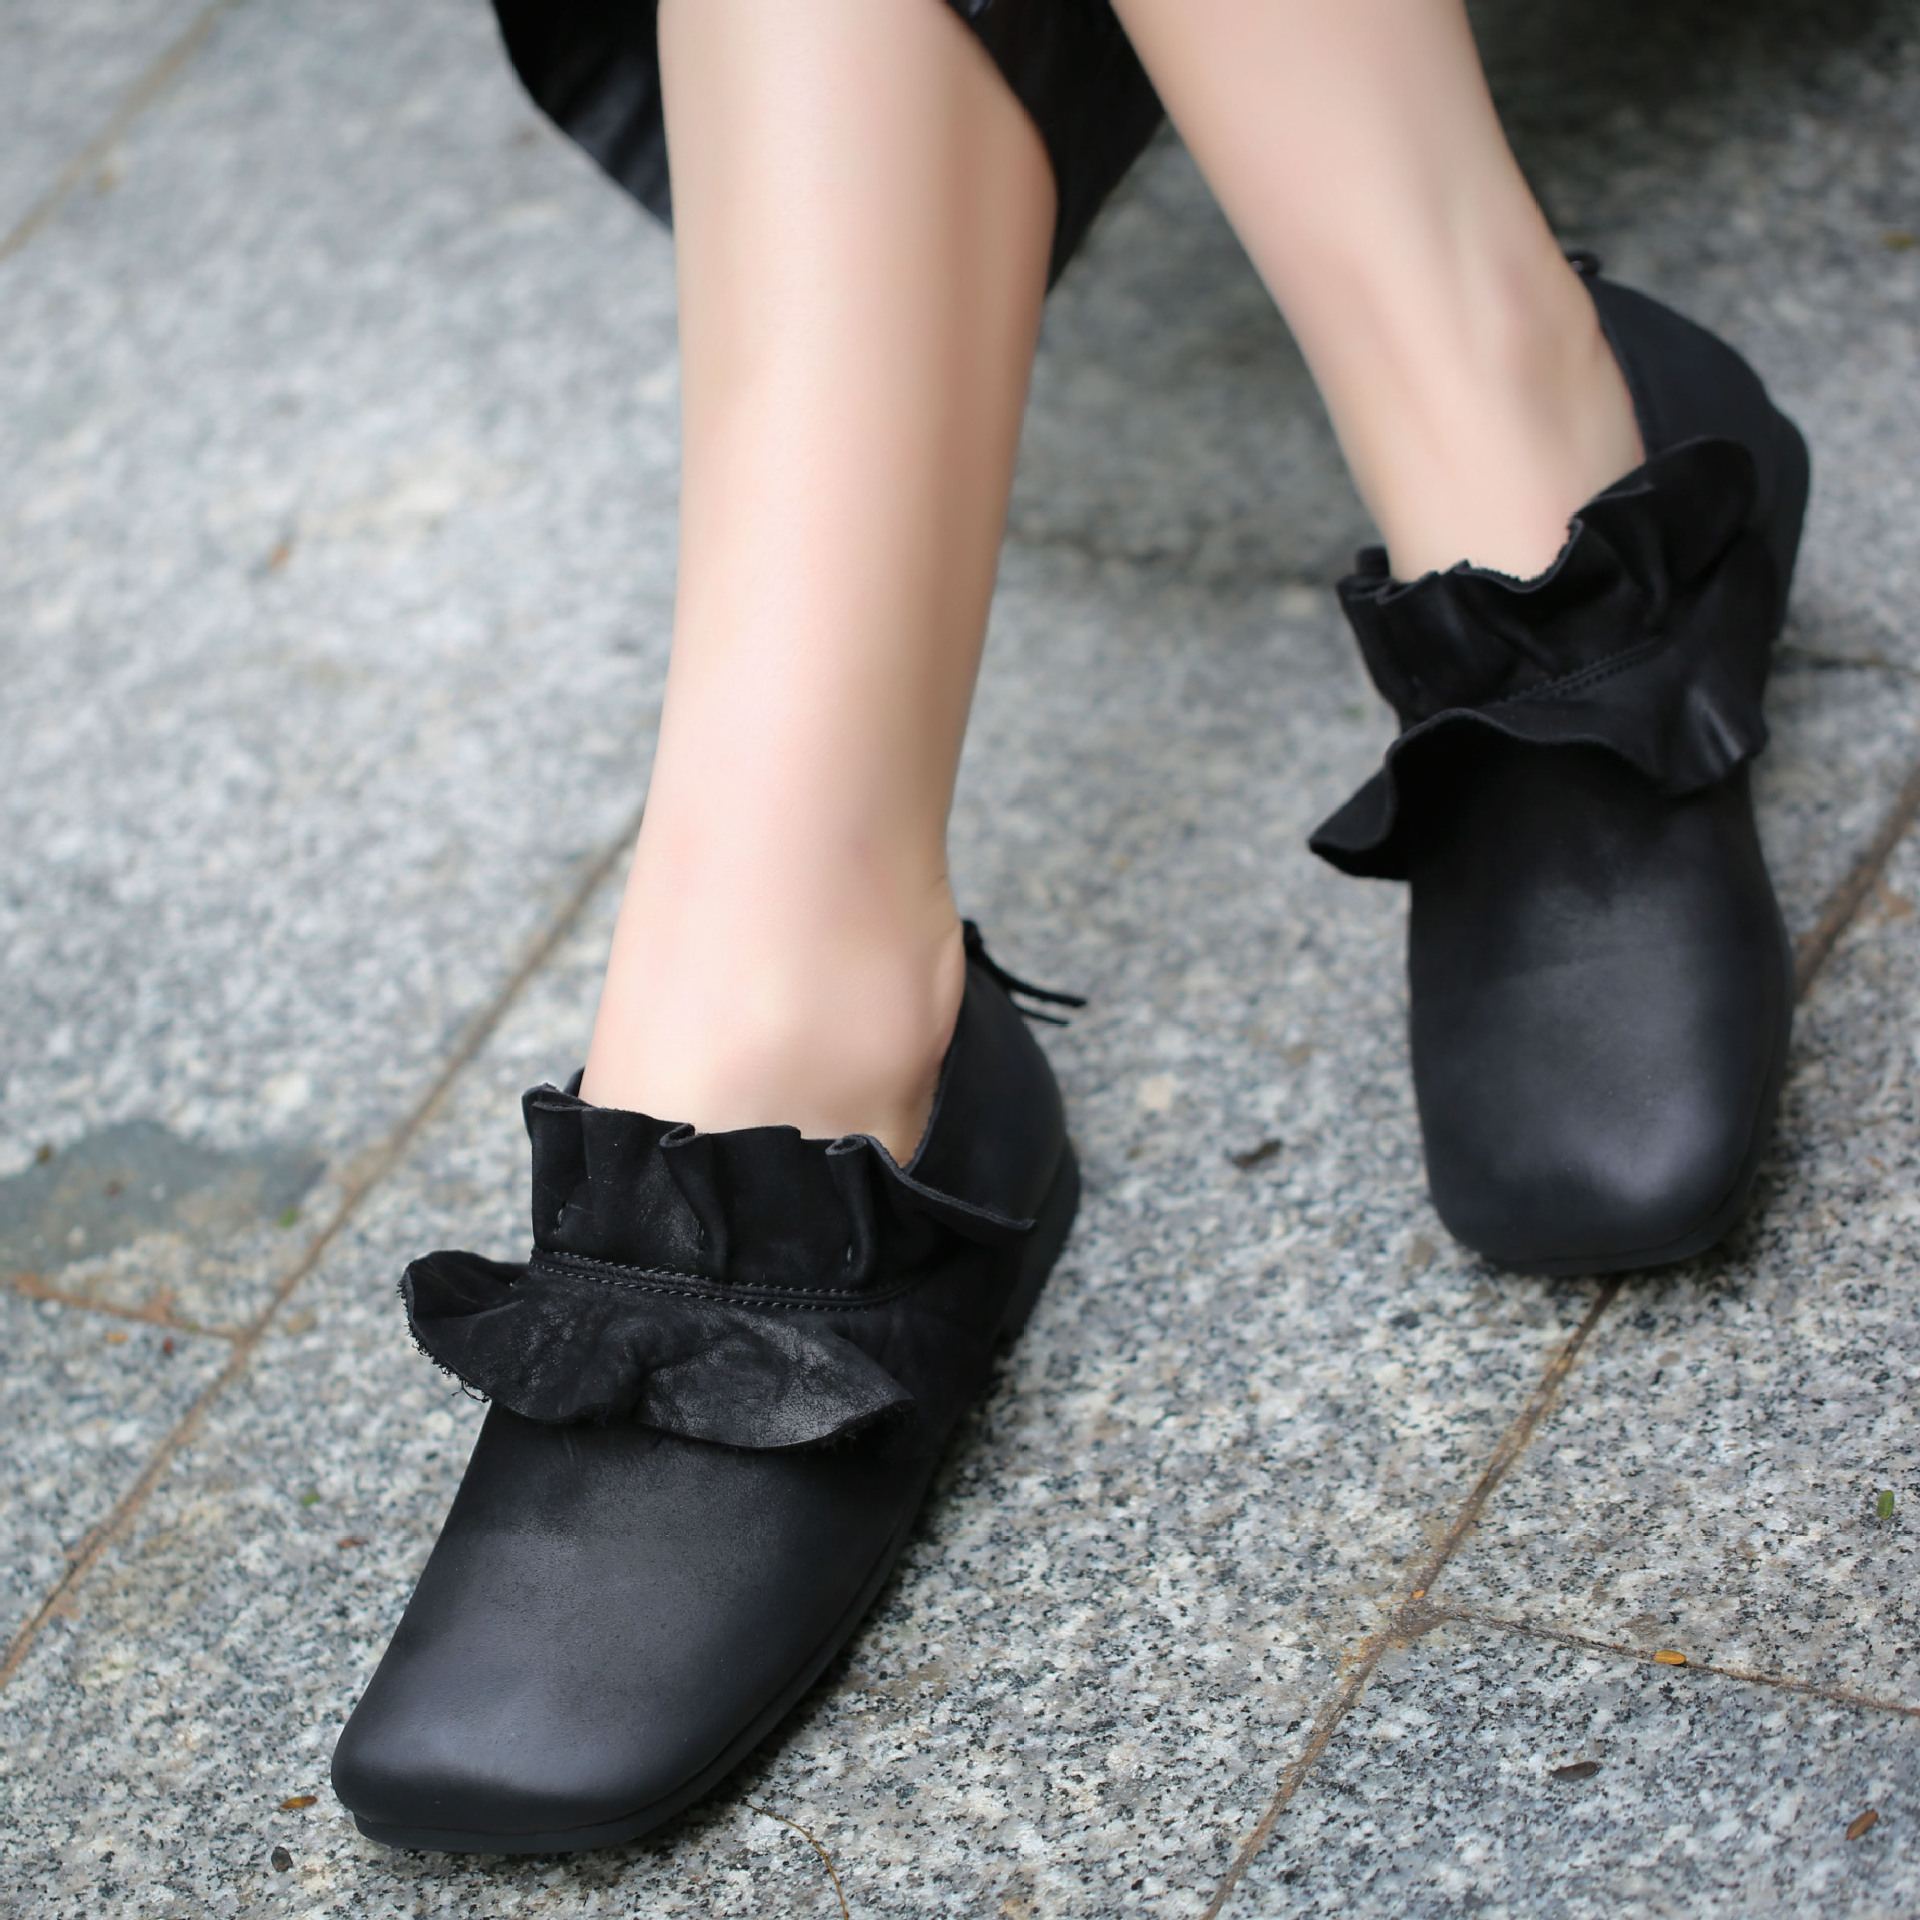 2019 Original Design Women Shoes Flats Pleated Square Toes Natural Leather Soft Handmade Vintage Lady Black